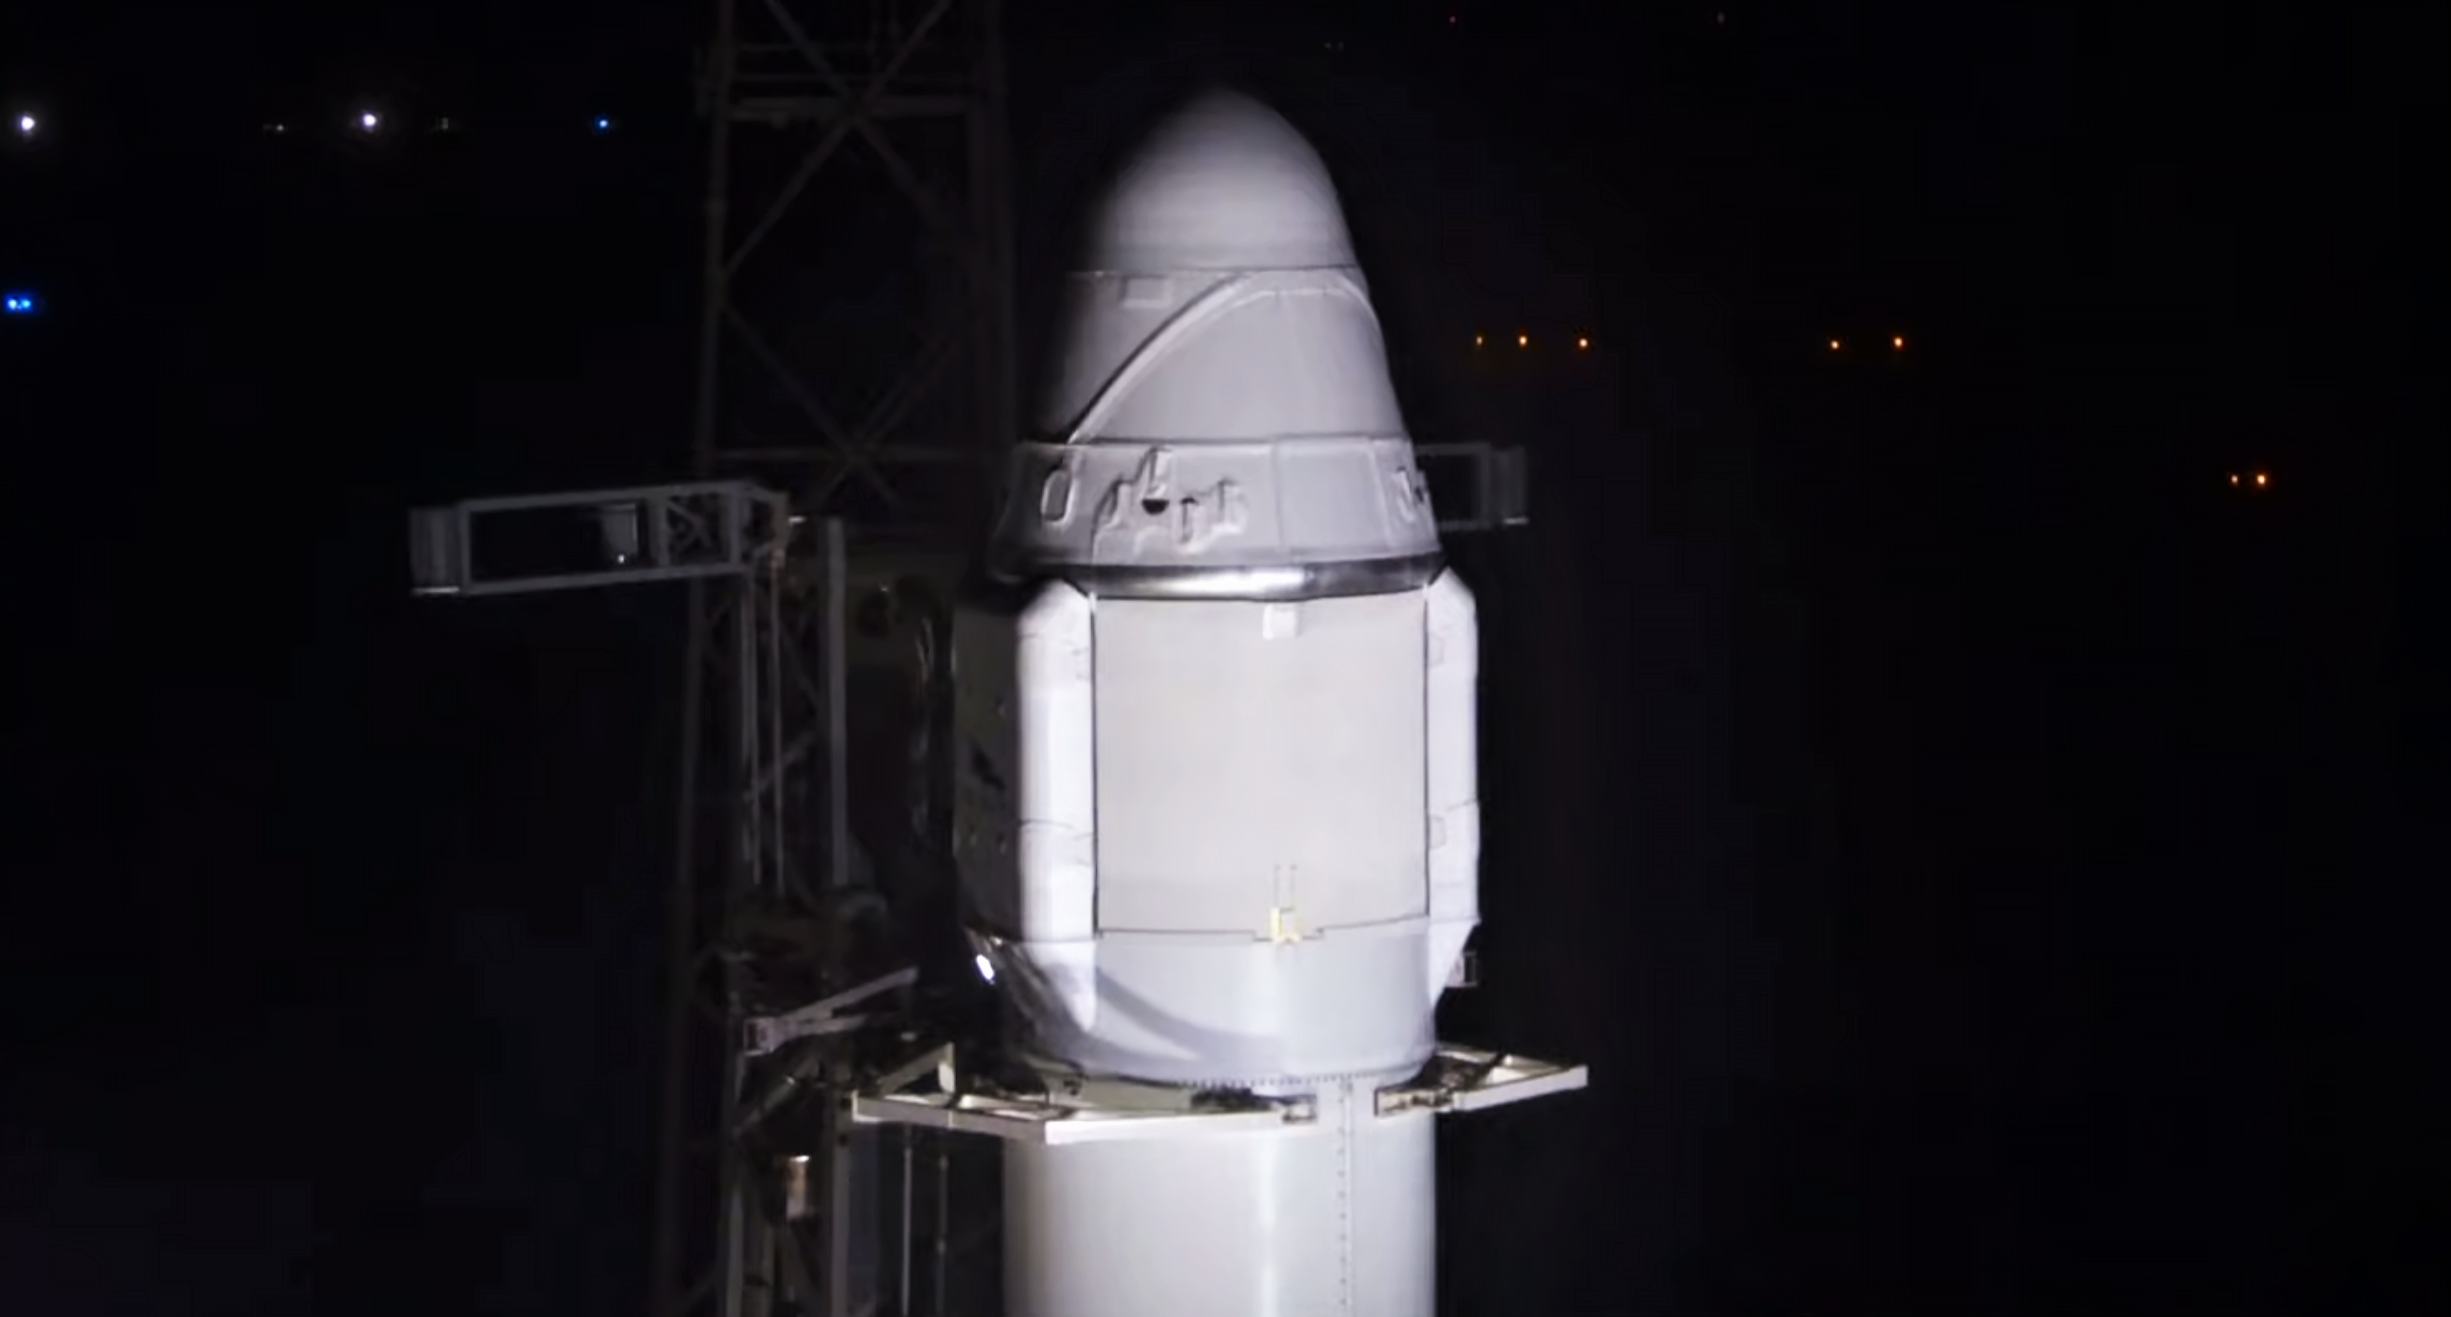 CRS-17 Falcon 9 B1056 scrub (SpaceX) 2